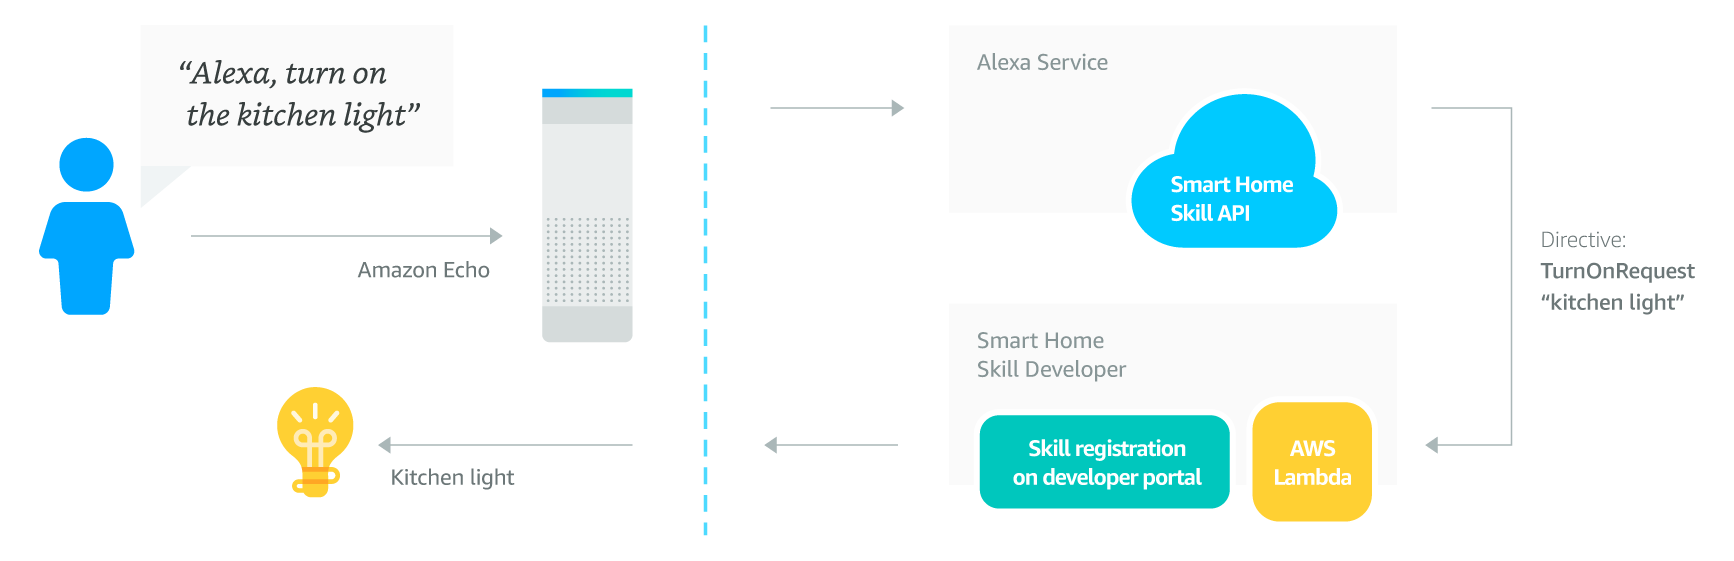 a collection of self service apis tools documentation and code samples that makes it fast and easy for anyone to add skills to alexa the smart home